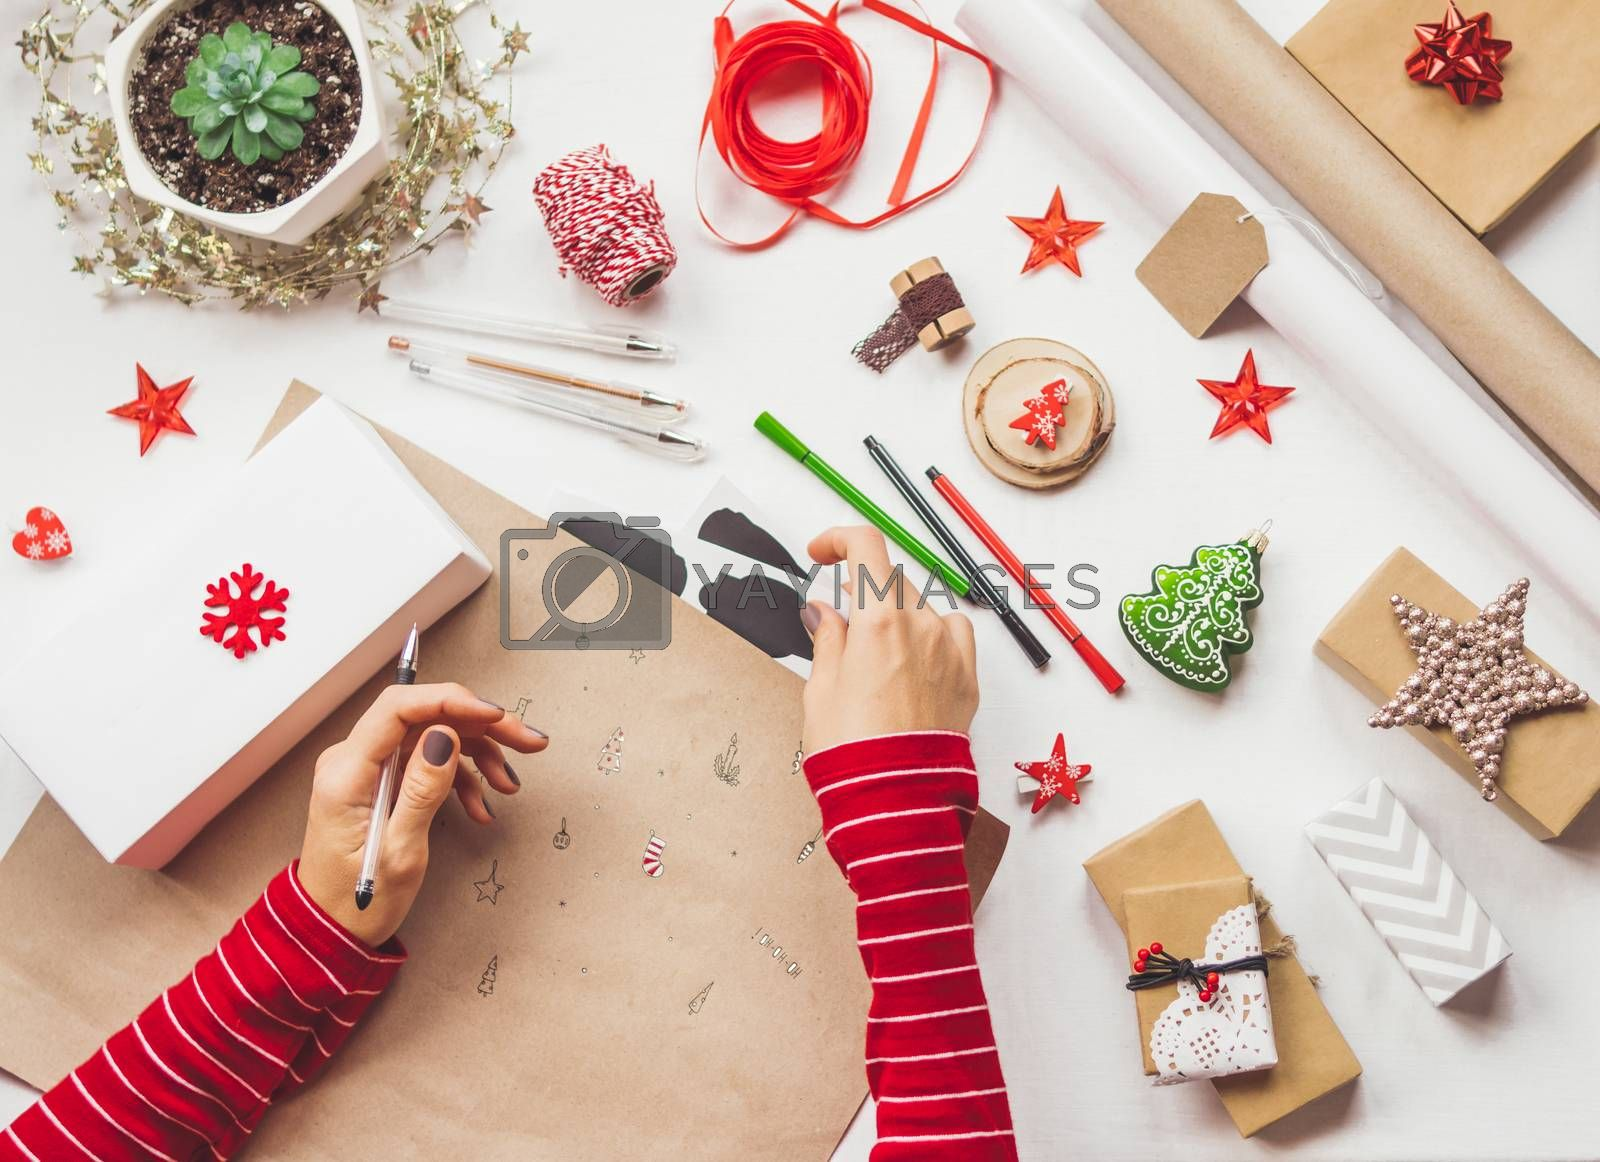 Top view on table with Christmas decorations. Left handed woman draws New Year symbols on craft paper and wraps presents. Flat lay.